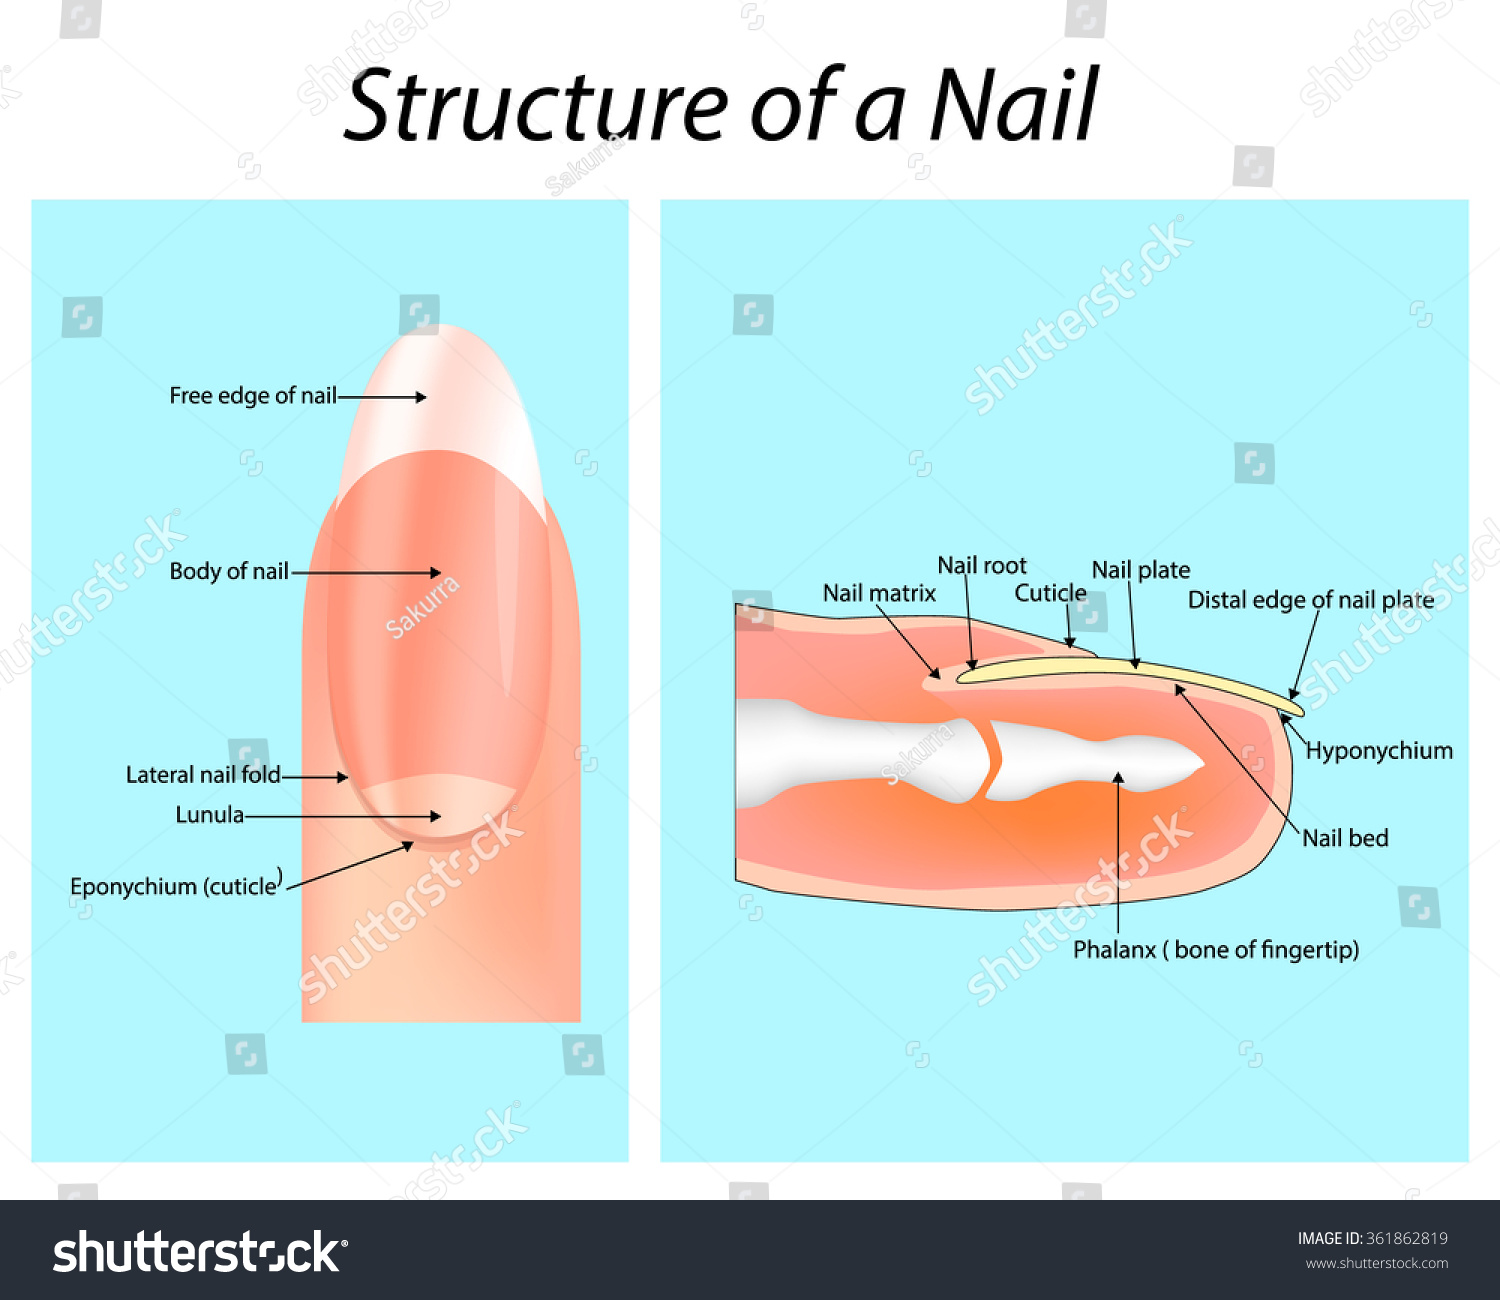 Structure Of A Nail. Nail (Anatomy) Stock Vector ...